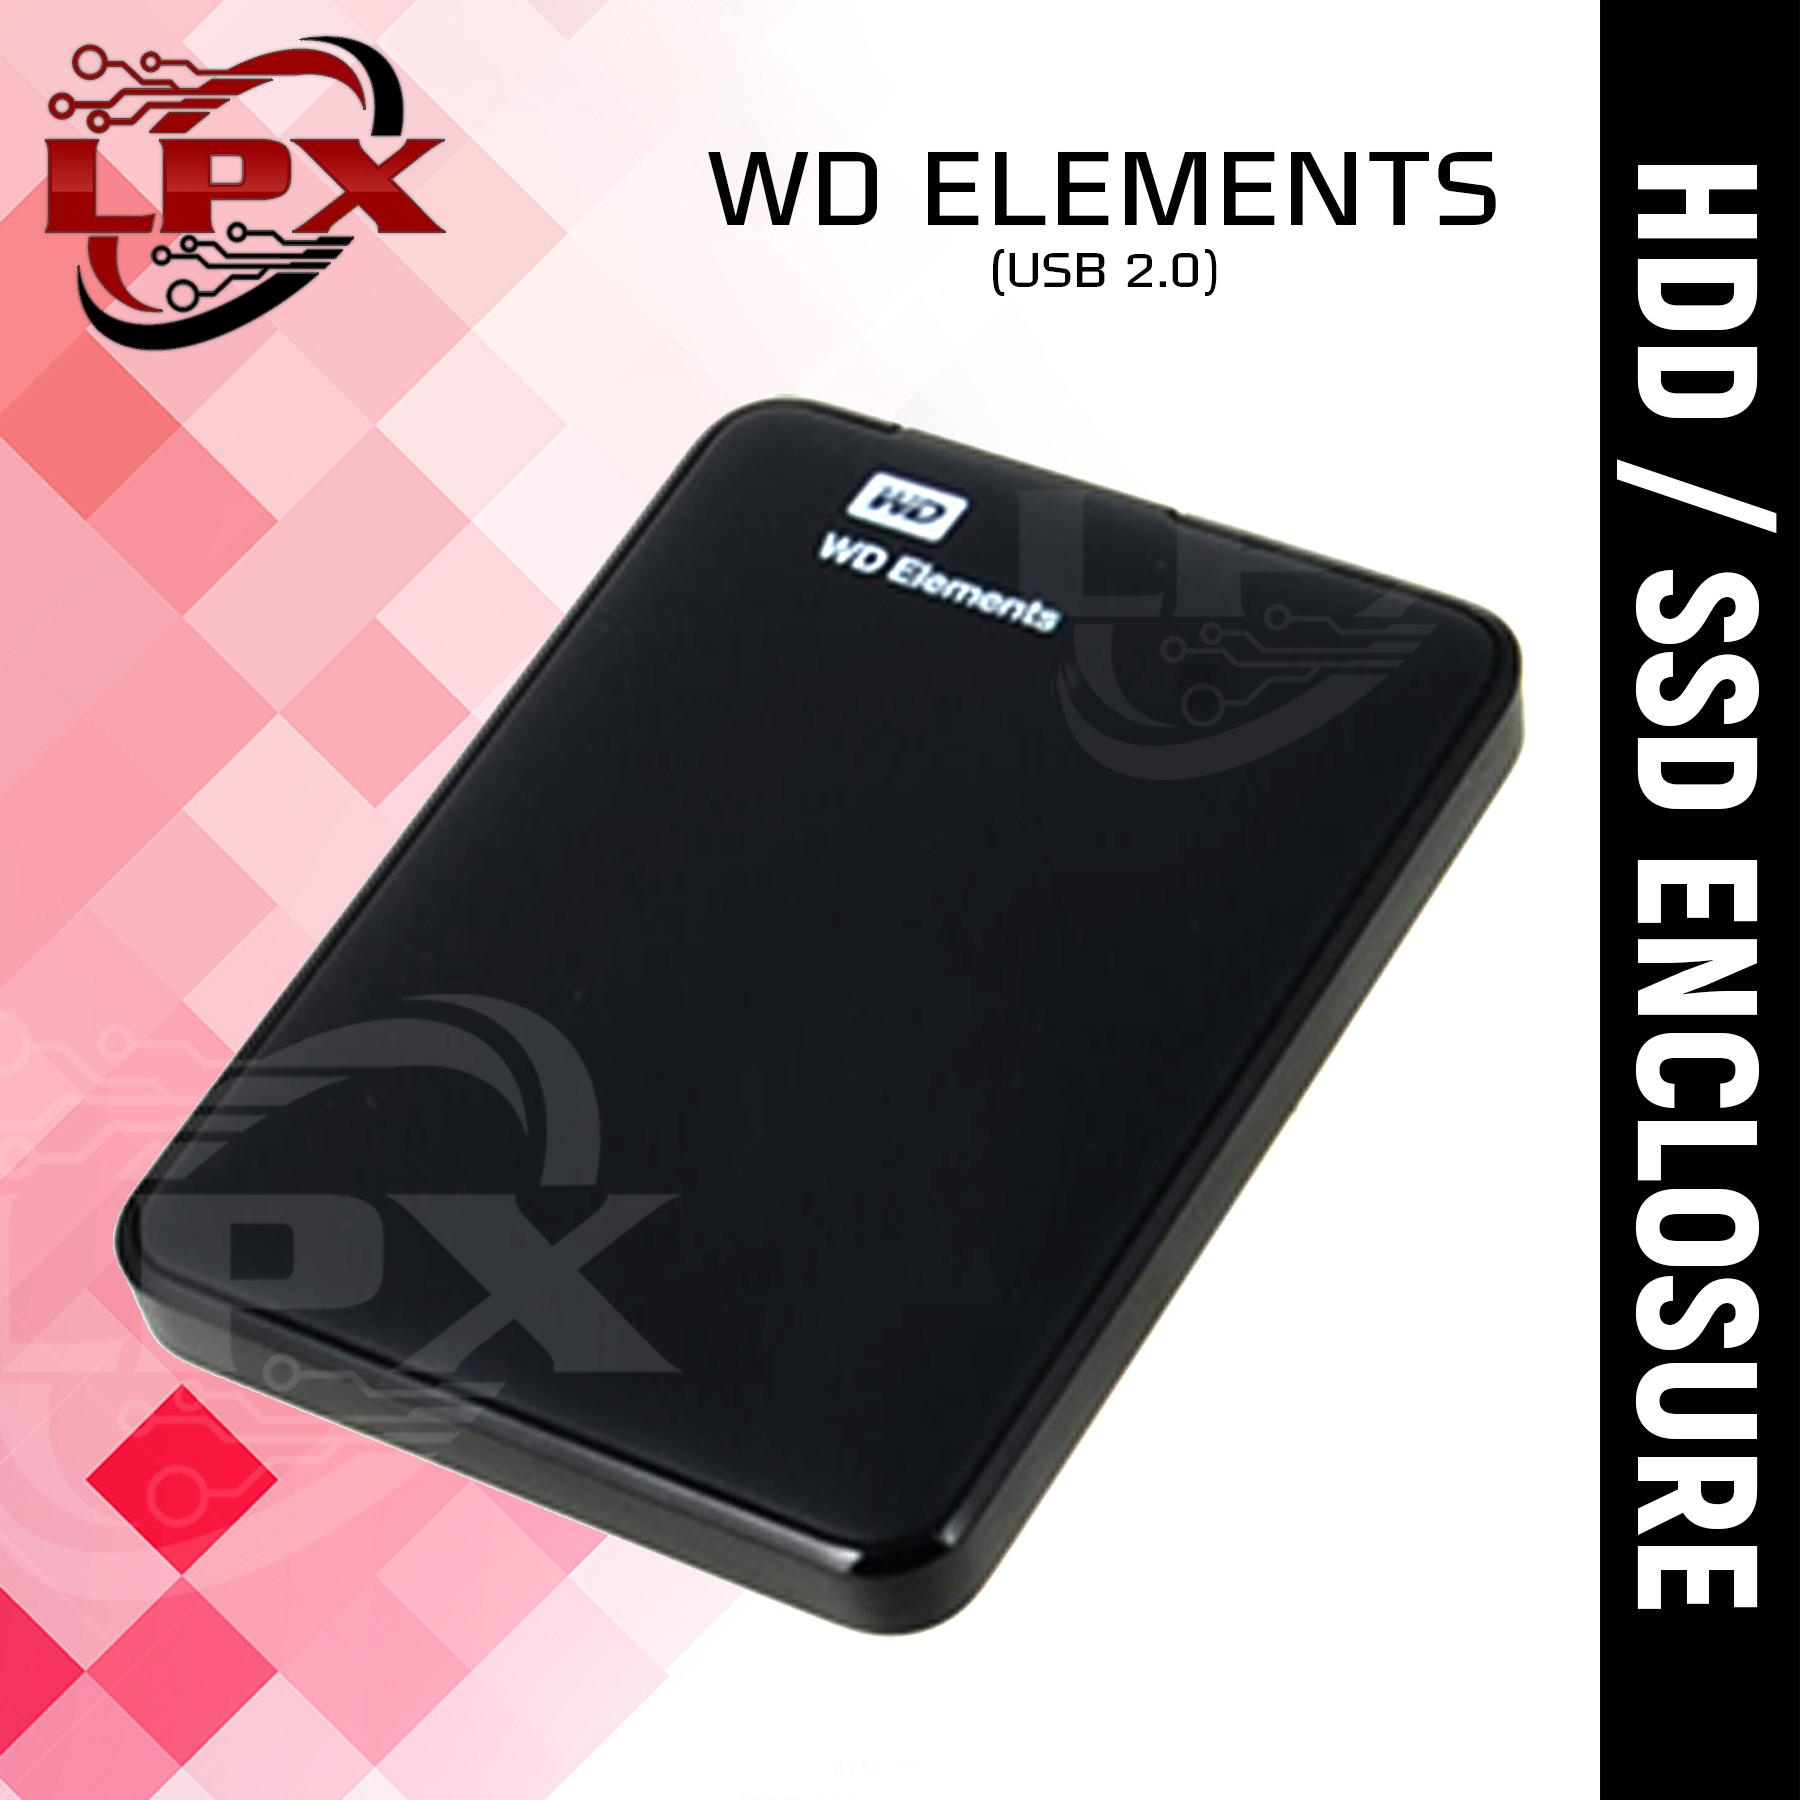 1tb Elements Portable Hard Drive Intl Page 2 Daftar Update Harga Wd My Passport 4tb Usb 30 Free Softcase Harddisk External Php 550